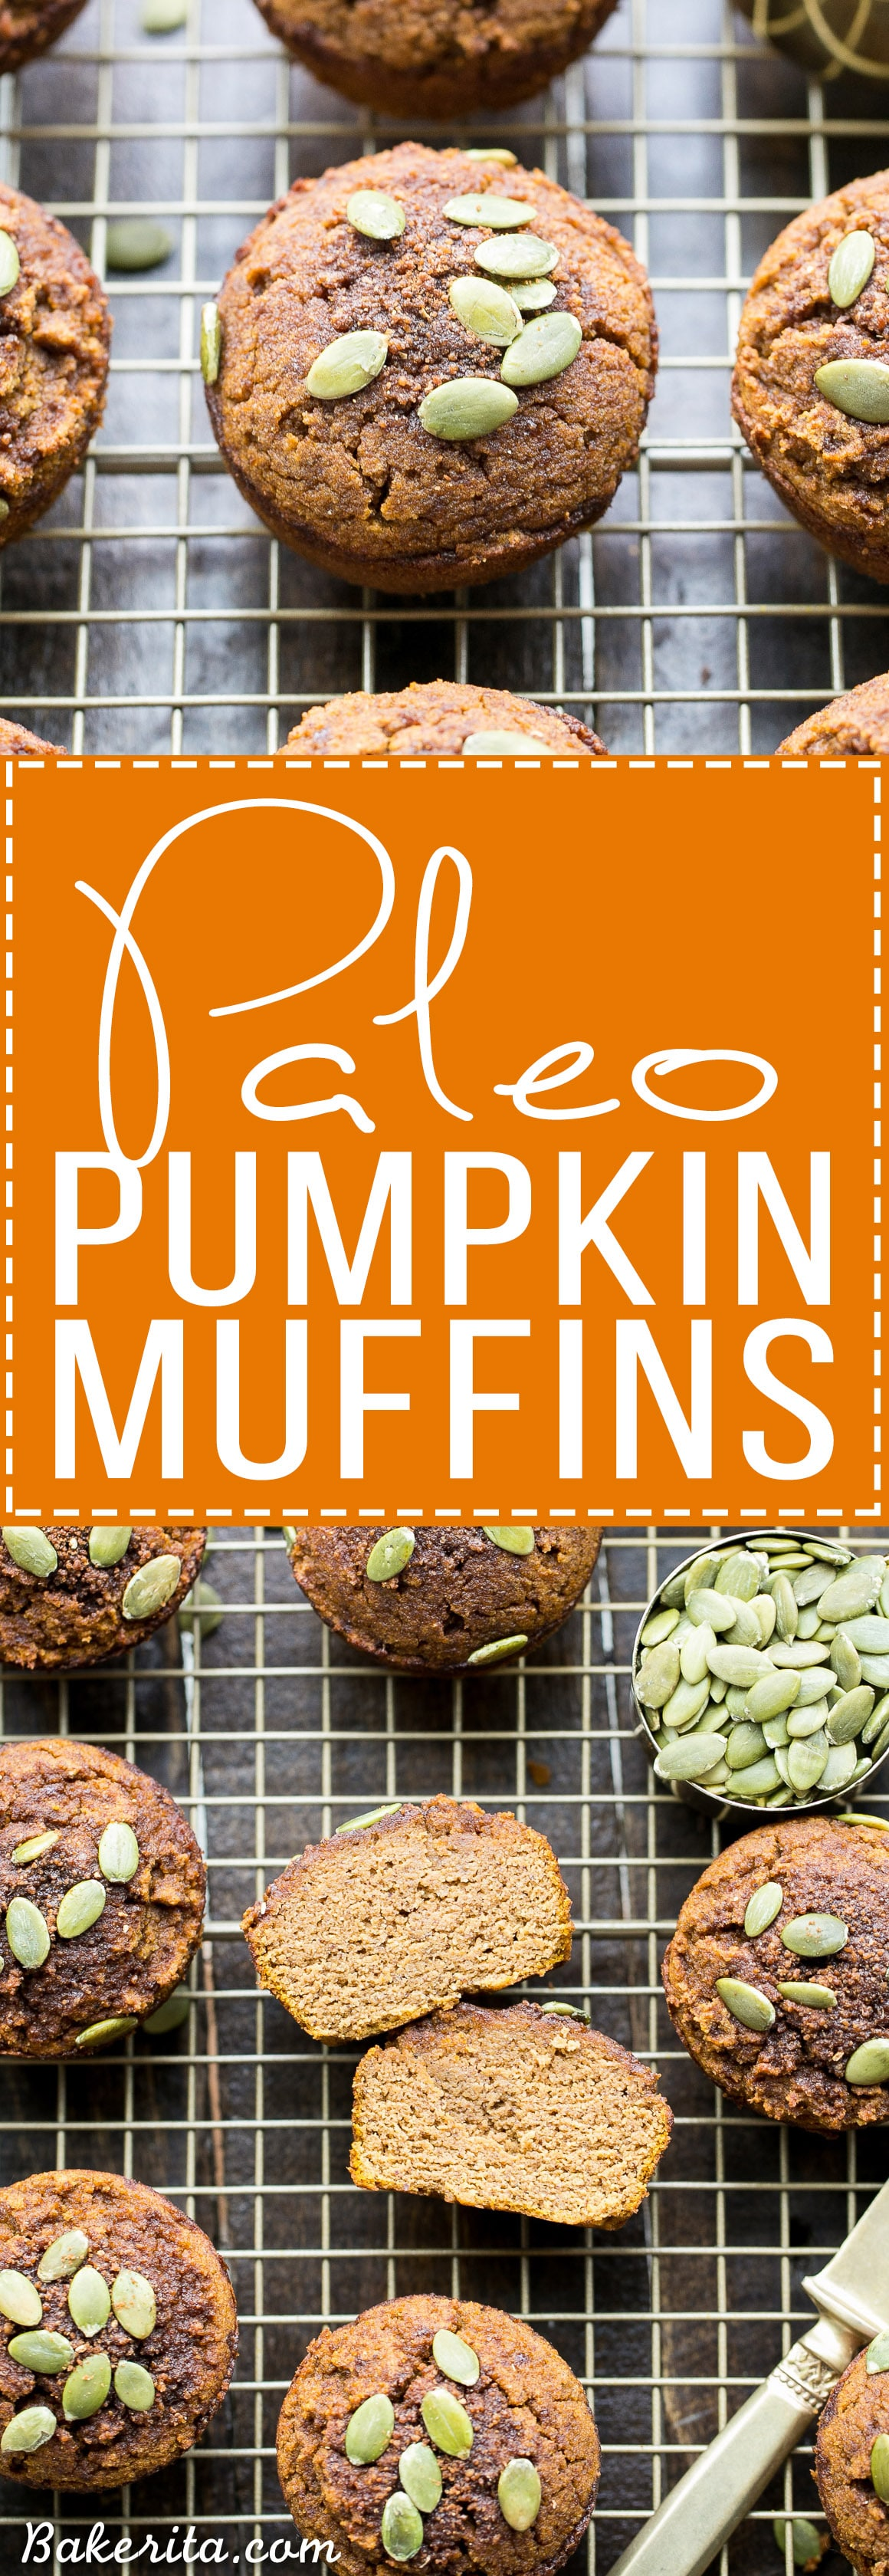 These Paleo Pumpkin Muffins, made with coconut flour and almond butter, are moist, fluffy, and lightly spiced with cinnamon and nutmeg. These healthy muffins make a great breakfast or snack and freeze well.